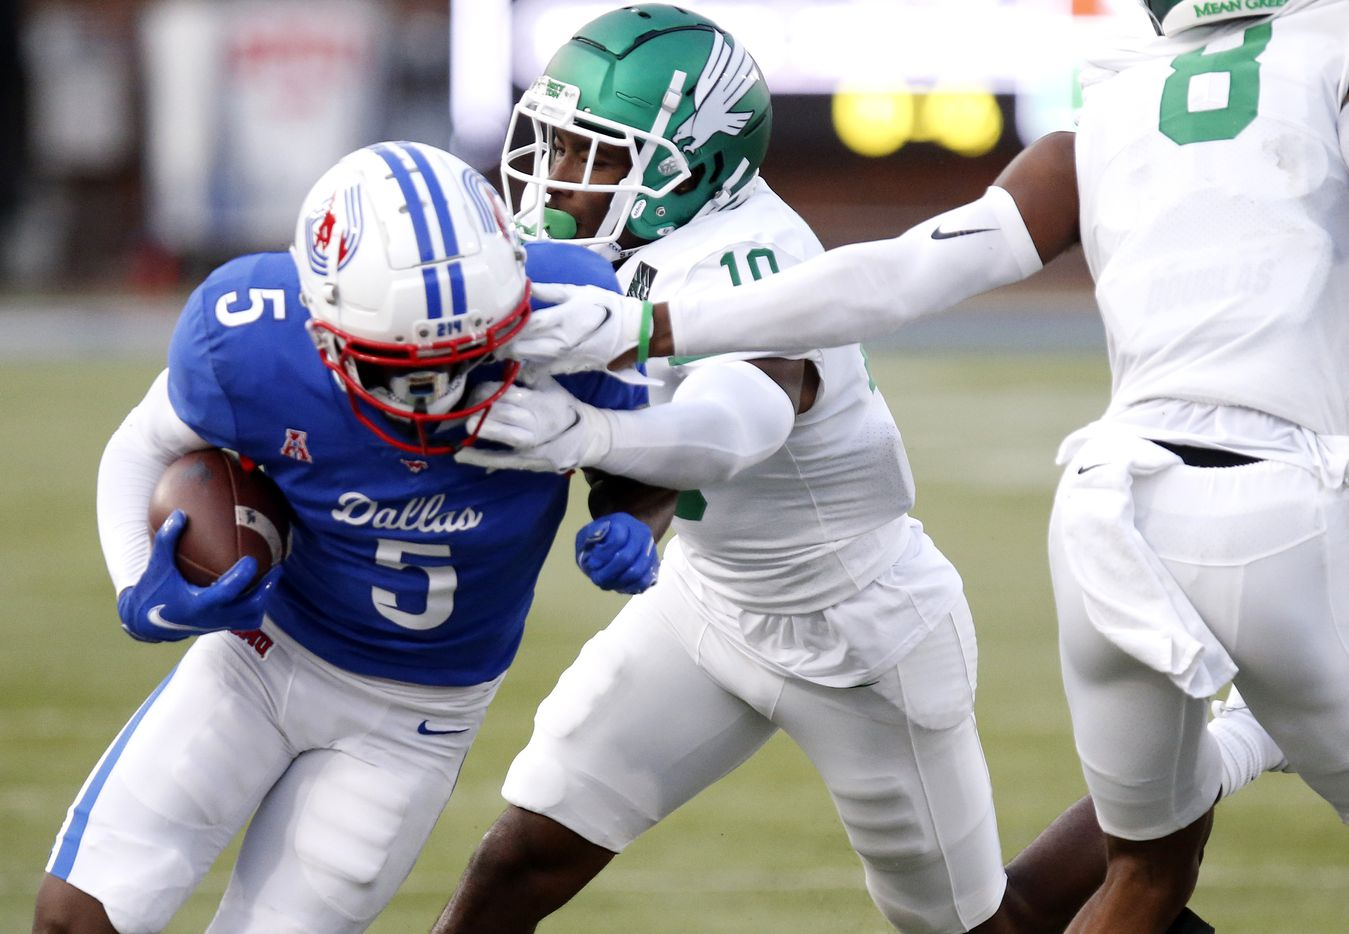 Southern Methodist Mustangs wide receiver Danny Gray (5) gets a double face mask from North Texas Mean Green defensive back Makyle Sanders (10) and North Texas Mean Green defensive back John Davis Jr. (8) during the first half as SMU hosted UNT at Ford Stadium in Dallas on Saturday, September 11, 2021. (Stewart F. House/Special Contributor)